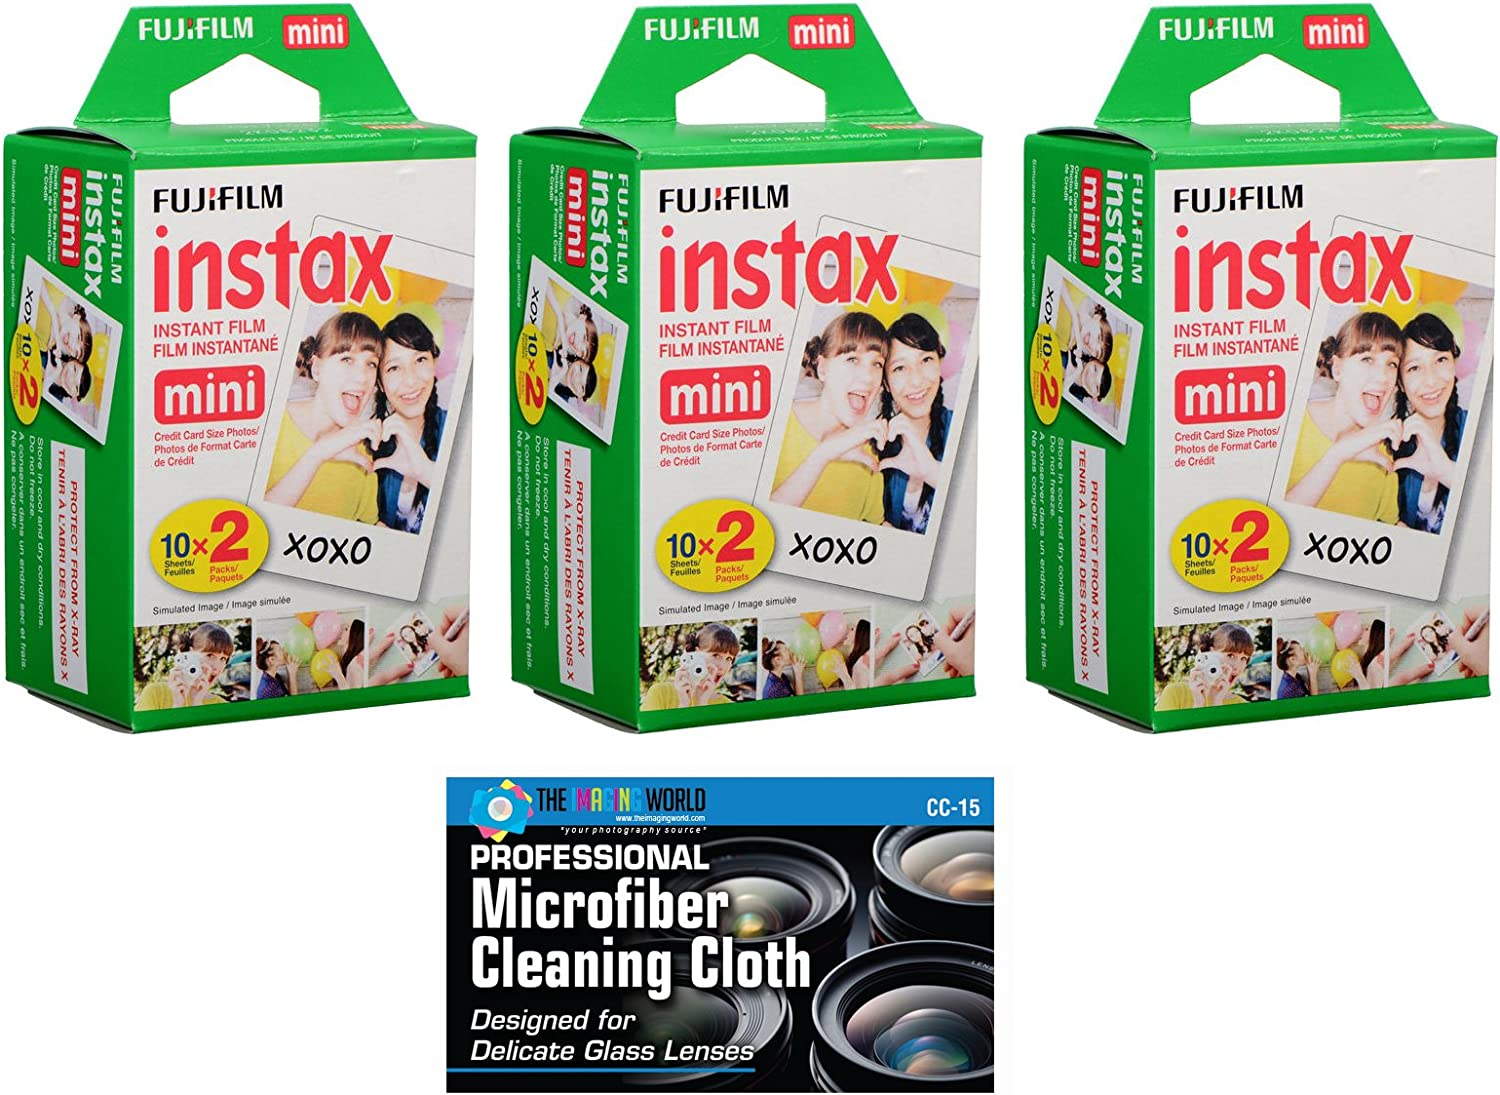 Fujifilm Instax Mini Instant Film Bundle with Microfiber Cleaning Cloth (3-Pack)